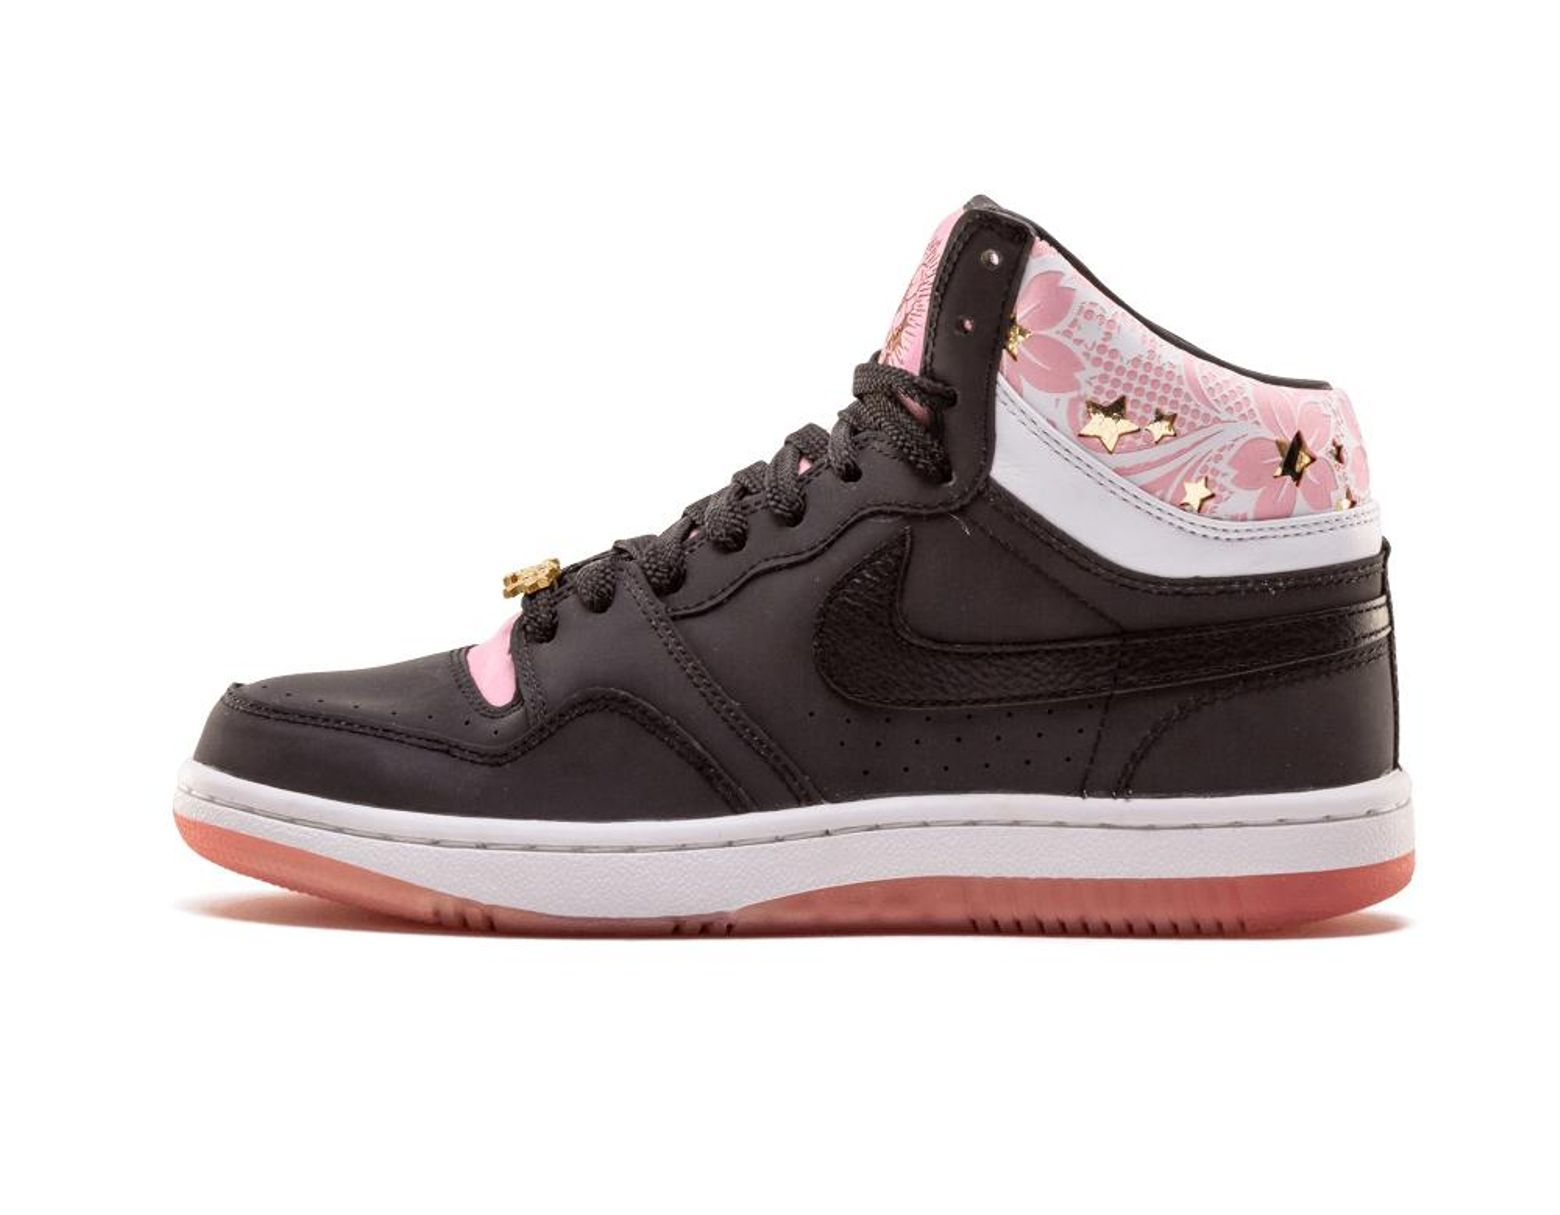 sale retailer 6edd7 35f8b Nike. Men s Black Court Force Hi Prm Sakura